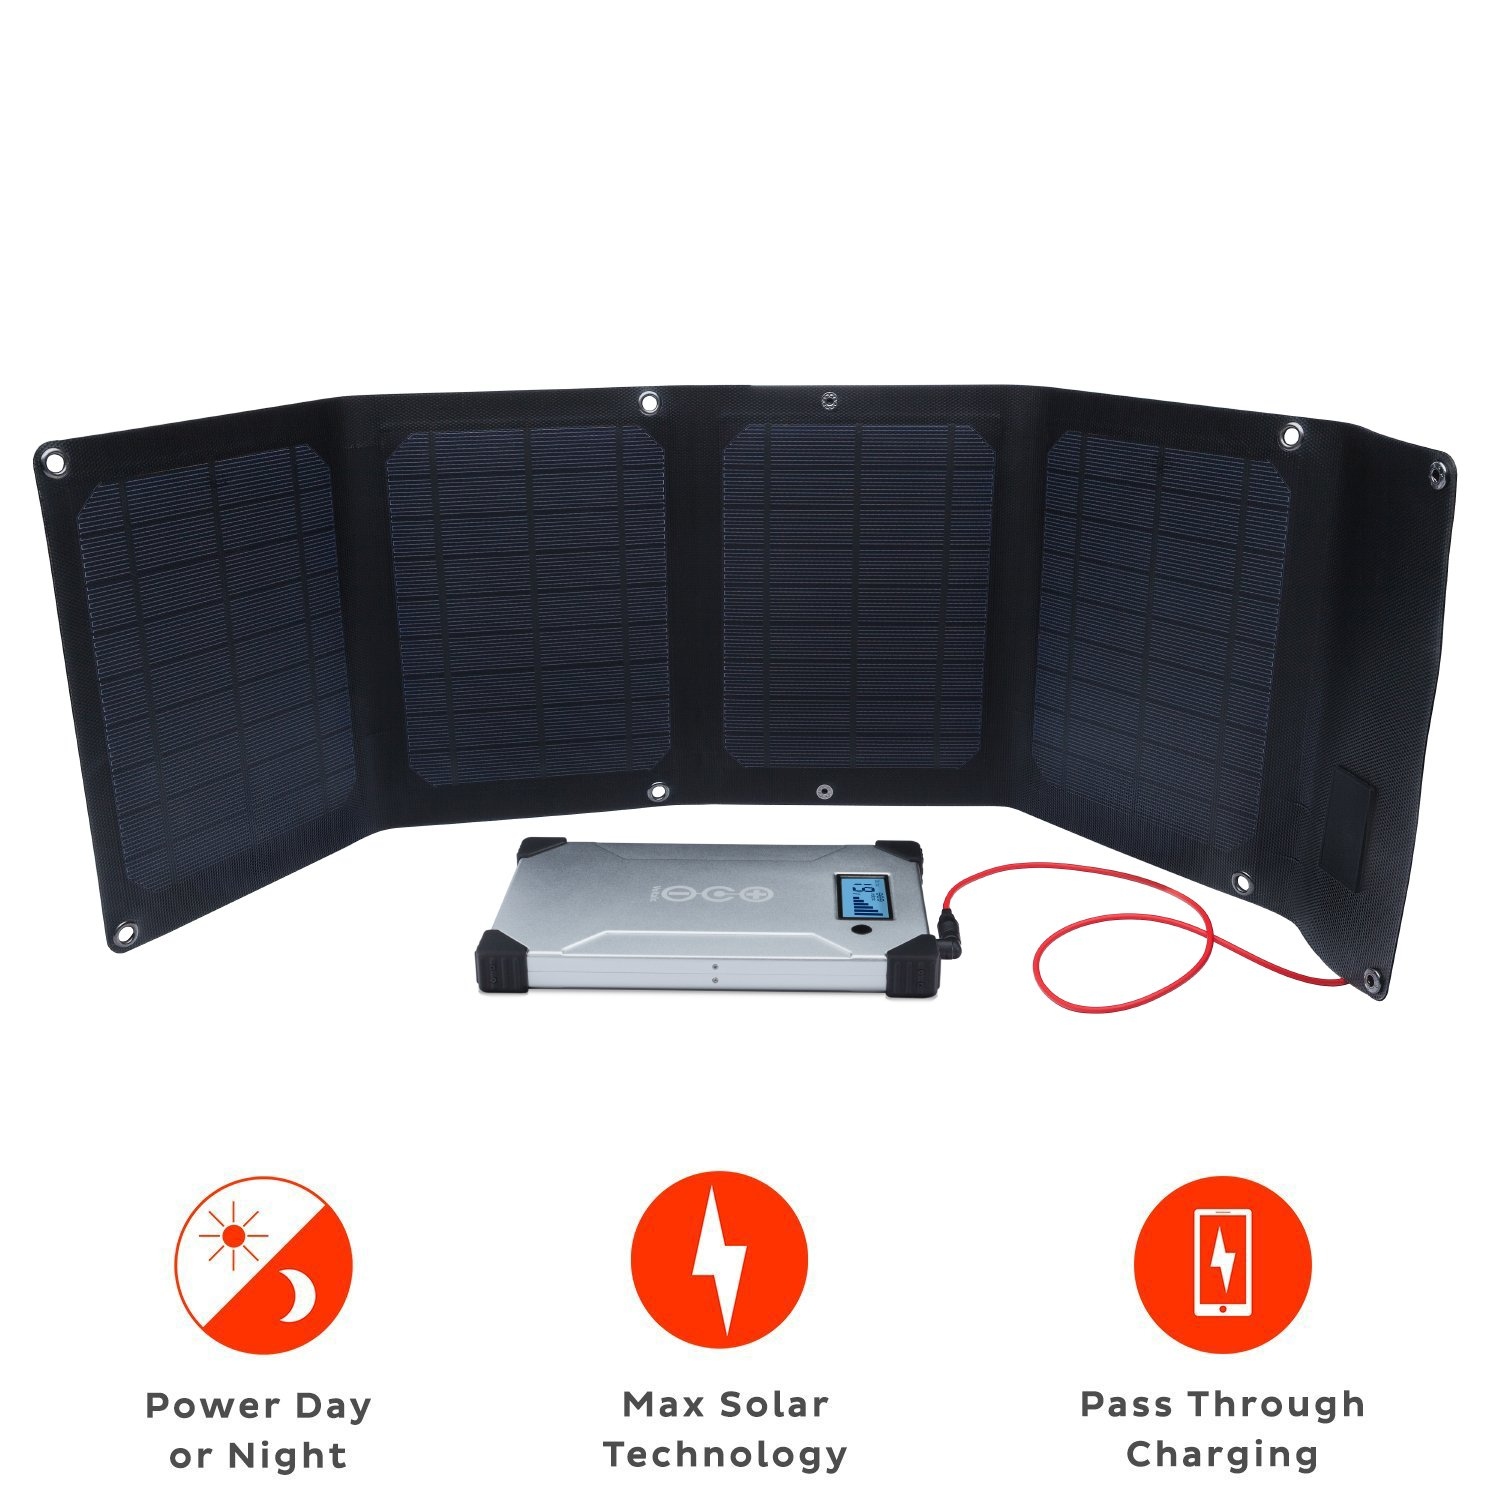 Voltaic Systems Arc 20 Watt Rapid Solar Laptop Charger Ece Rockstars Microcontrollerbased 24000mah Includes A Battery Pack Power Bank And 2 Year Warranty Powers Laptops